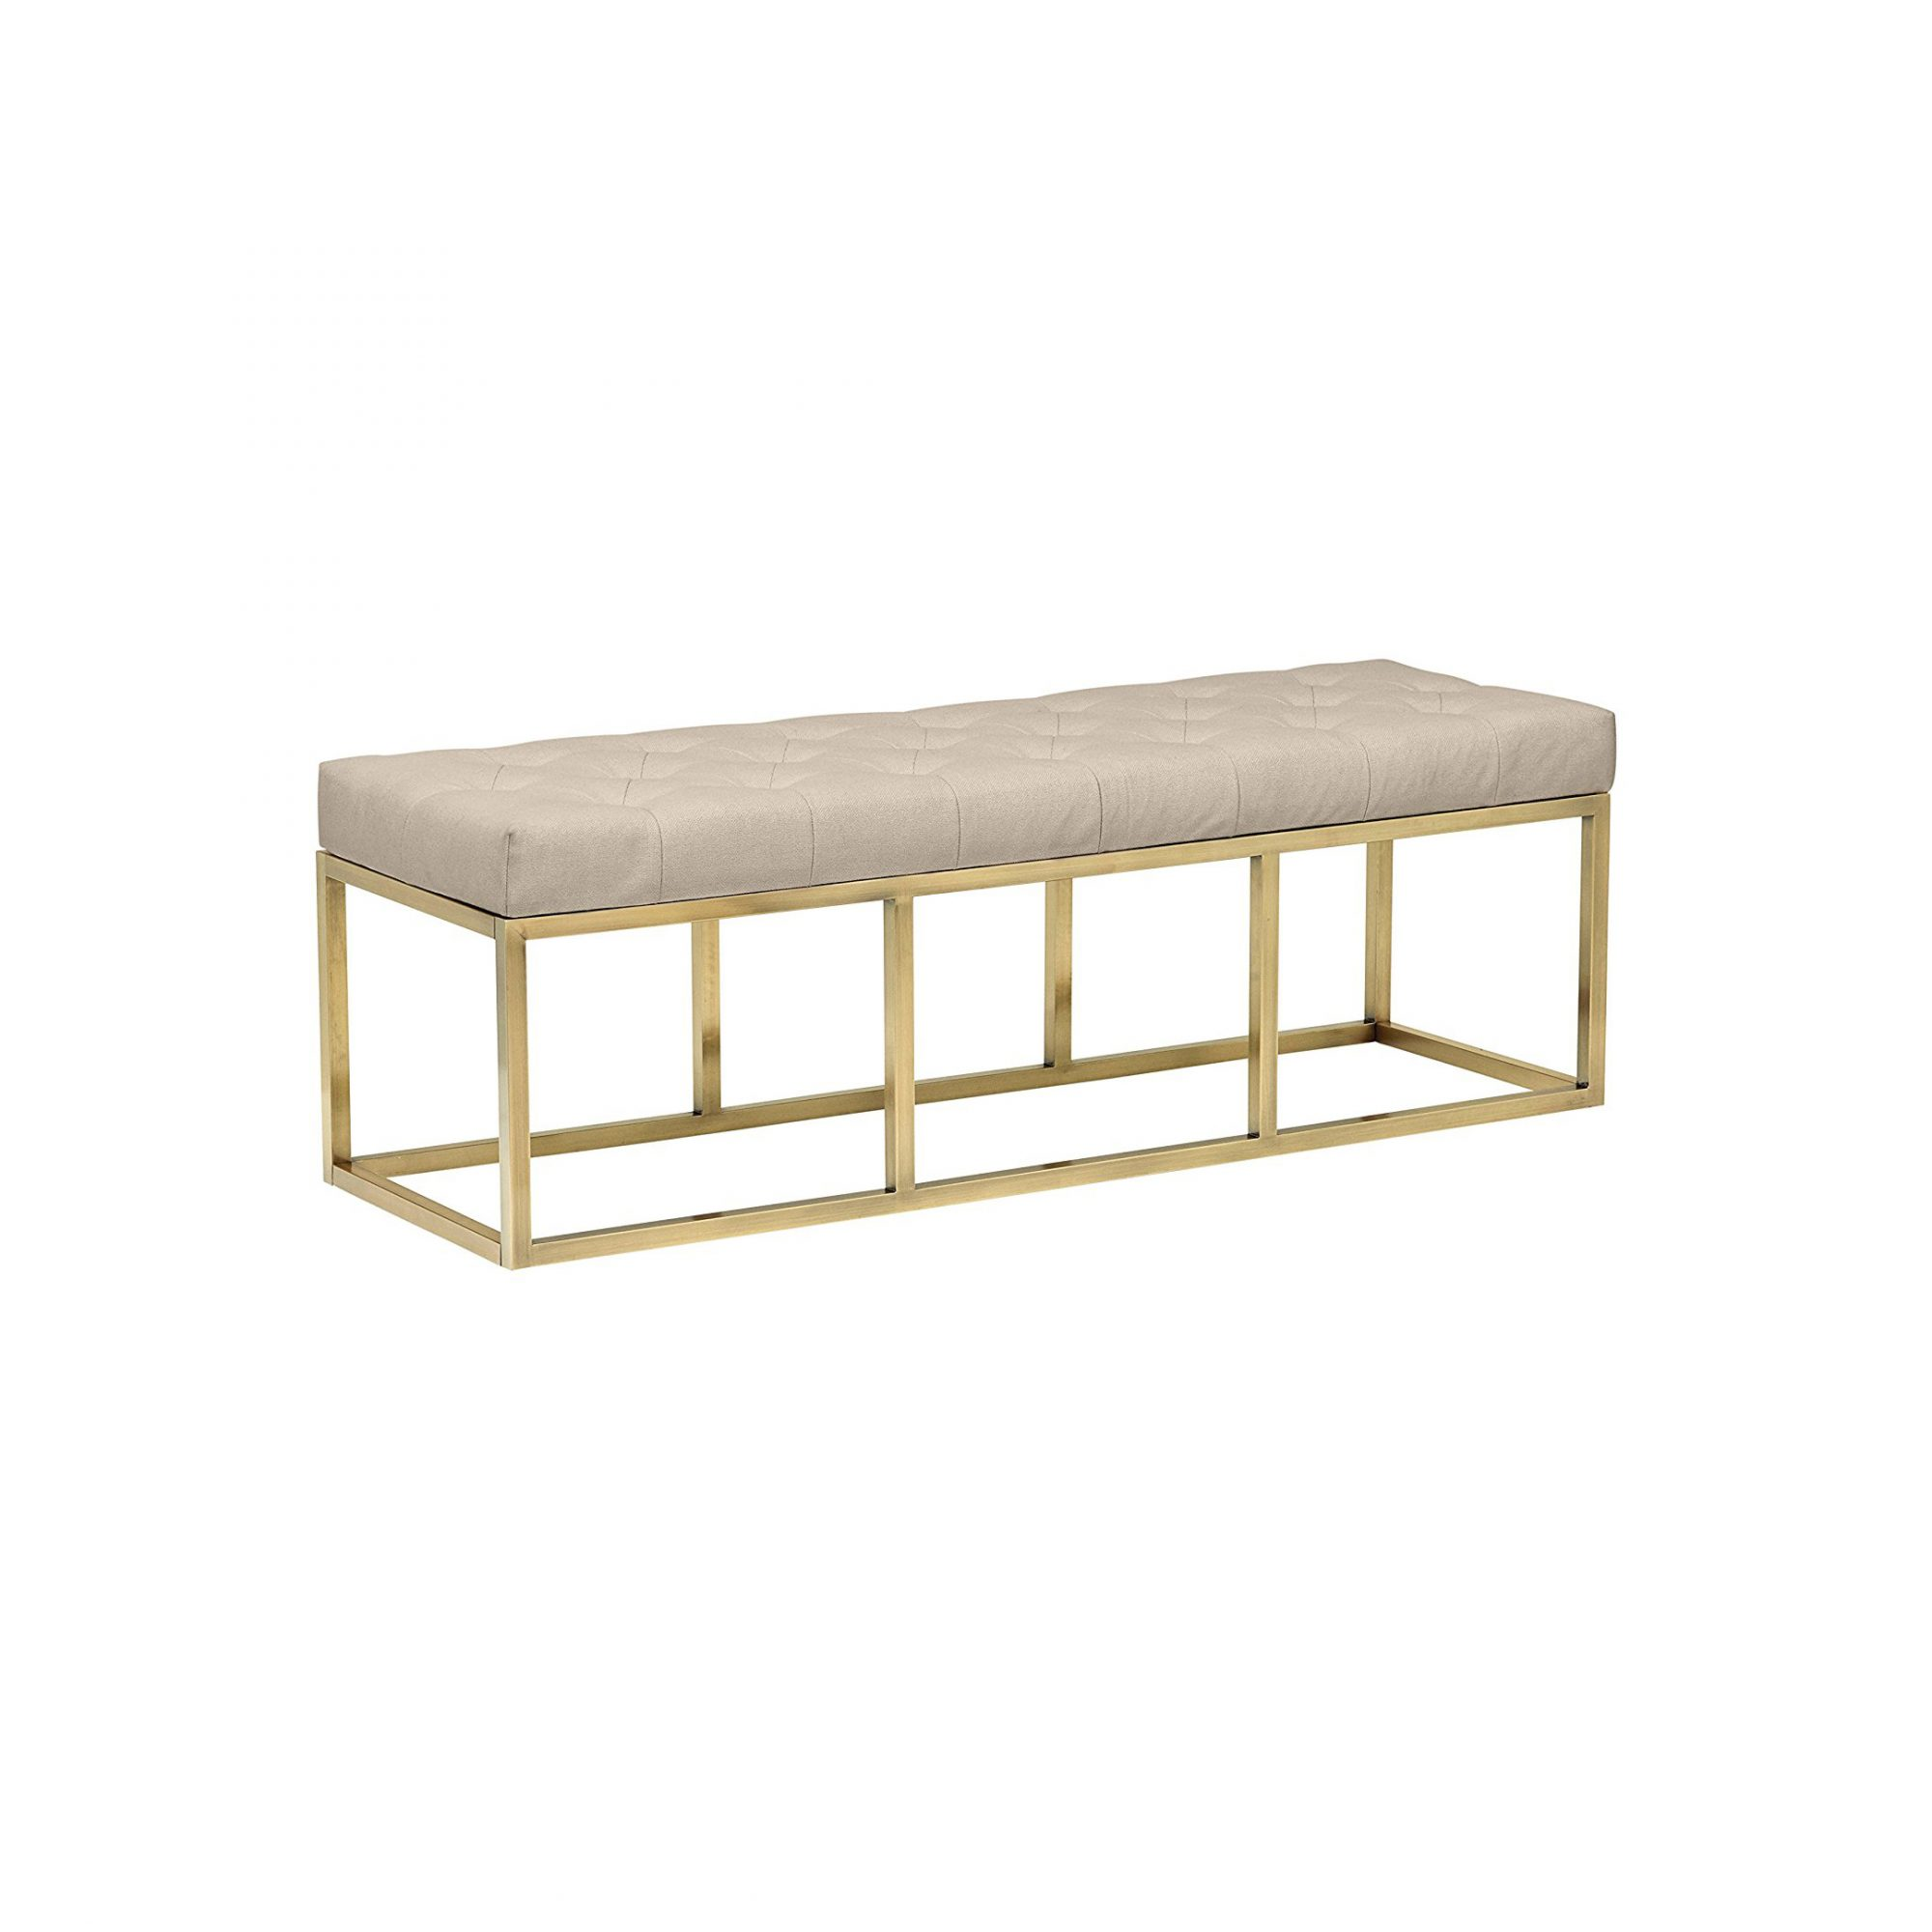 Rivet Amazon Prime Day Bench